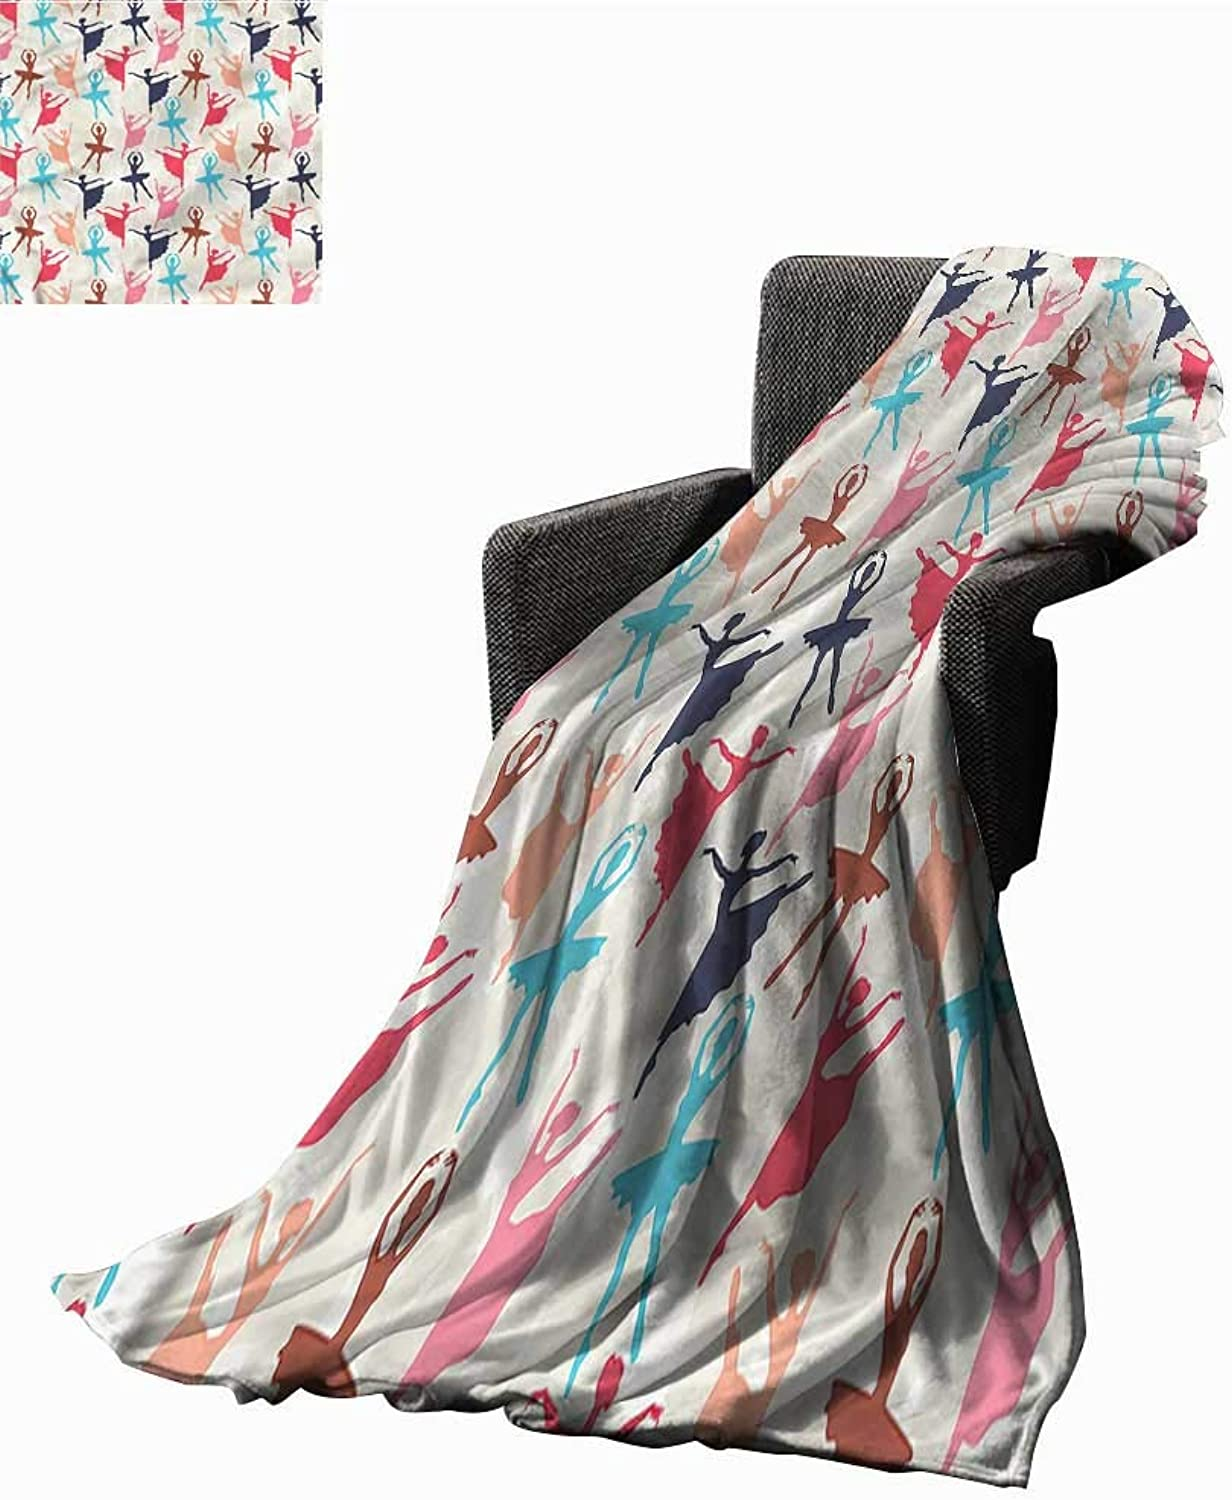 RenteriaDecor Warm Blanket Art,Dancing Ballerina Silhouettes Blanket for Bed Couch W70 x L50 inch